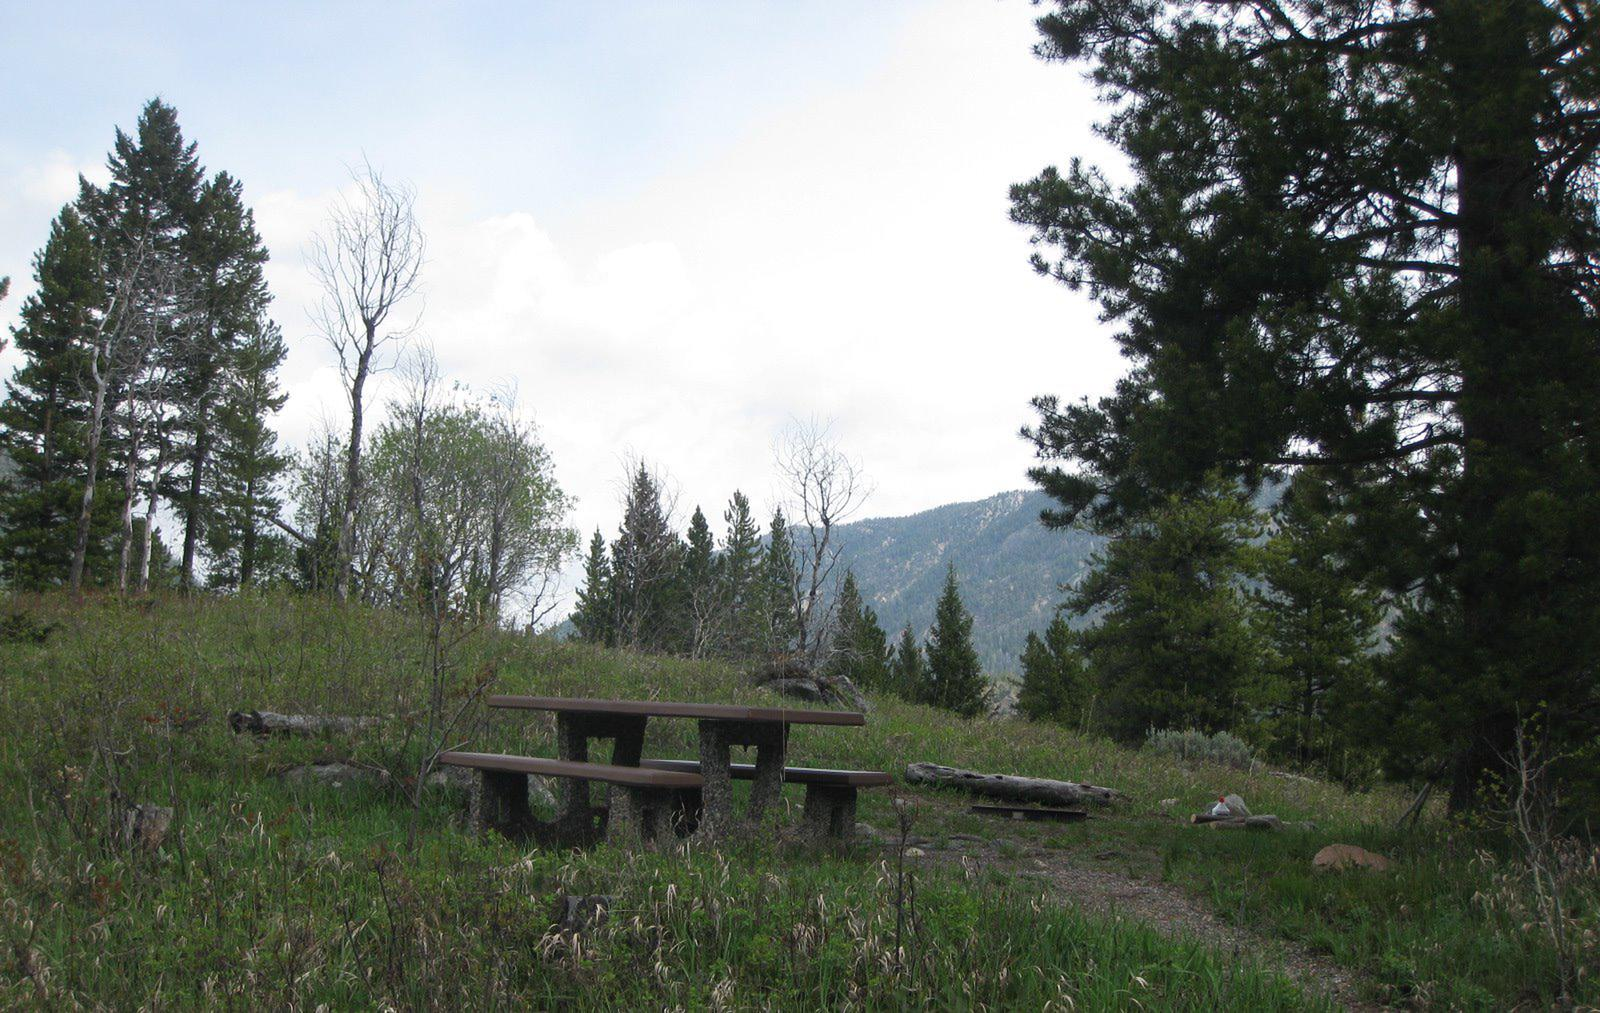 Site A23, campsite surrounded by pine trees, picnic table & fire ringSite A23